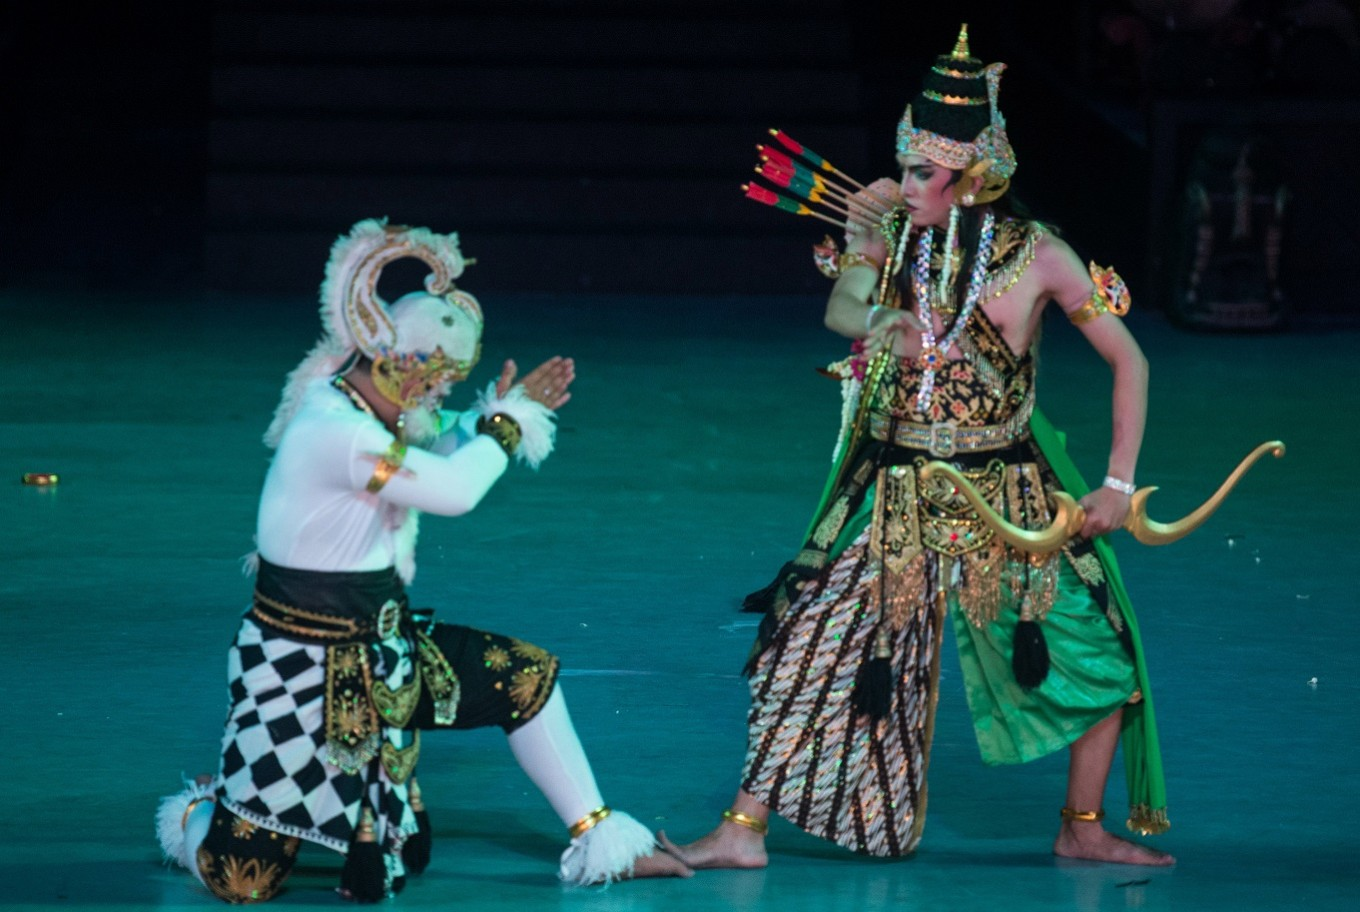 Blitar-based troupe perform the Ramayana ballet, East Javanese style